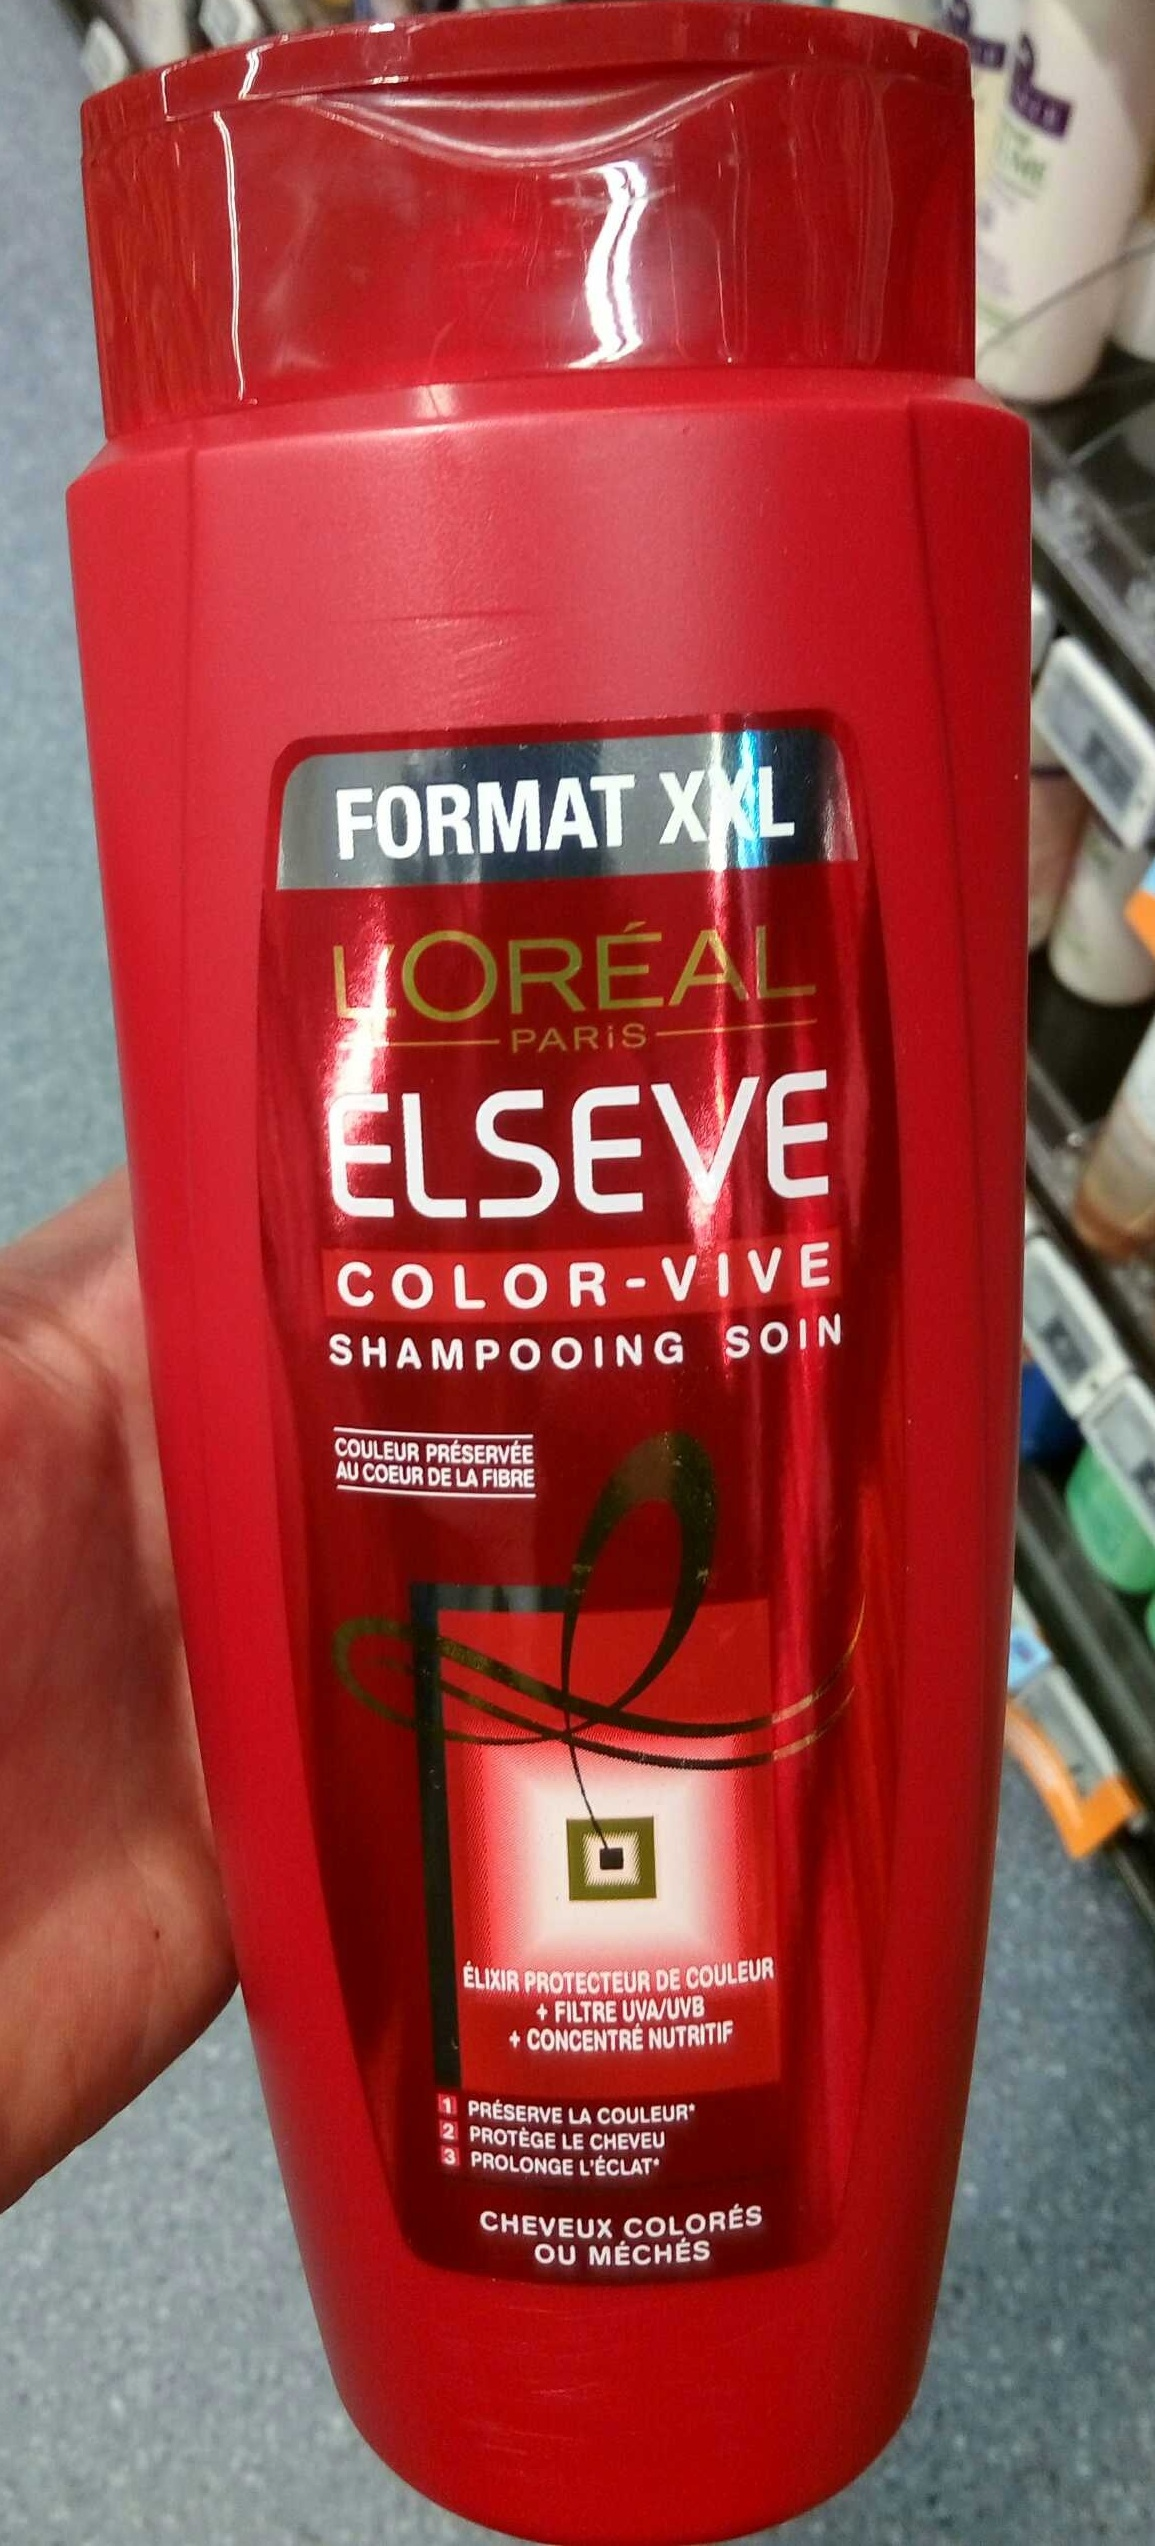 Elseve Color-Vive Shampooing soin (format XXL) - Product